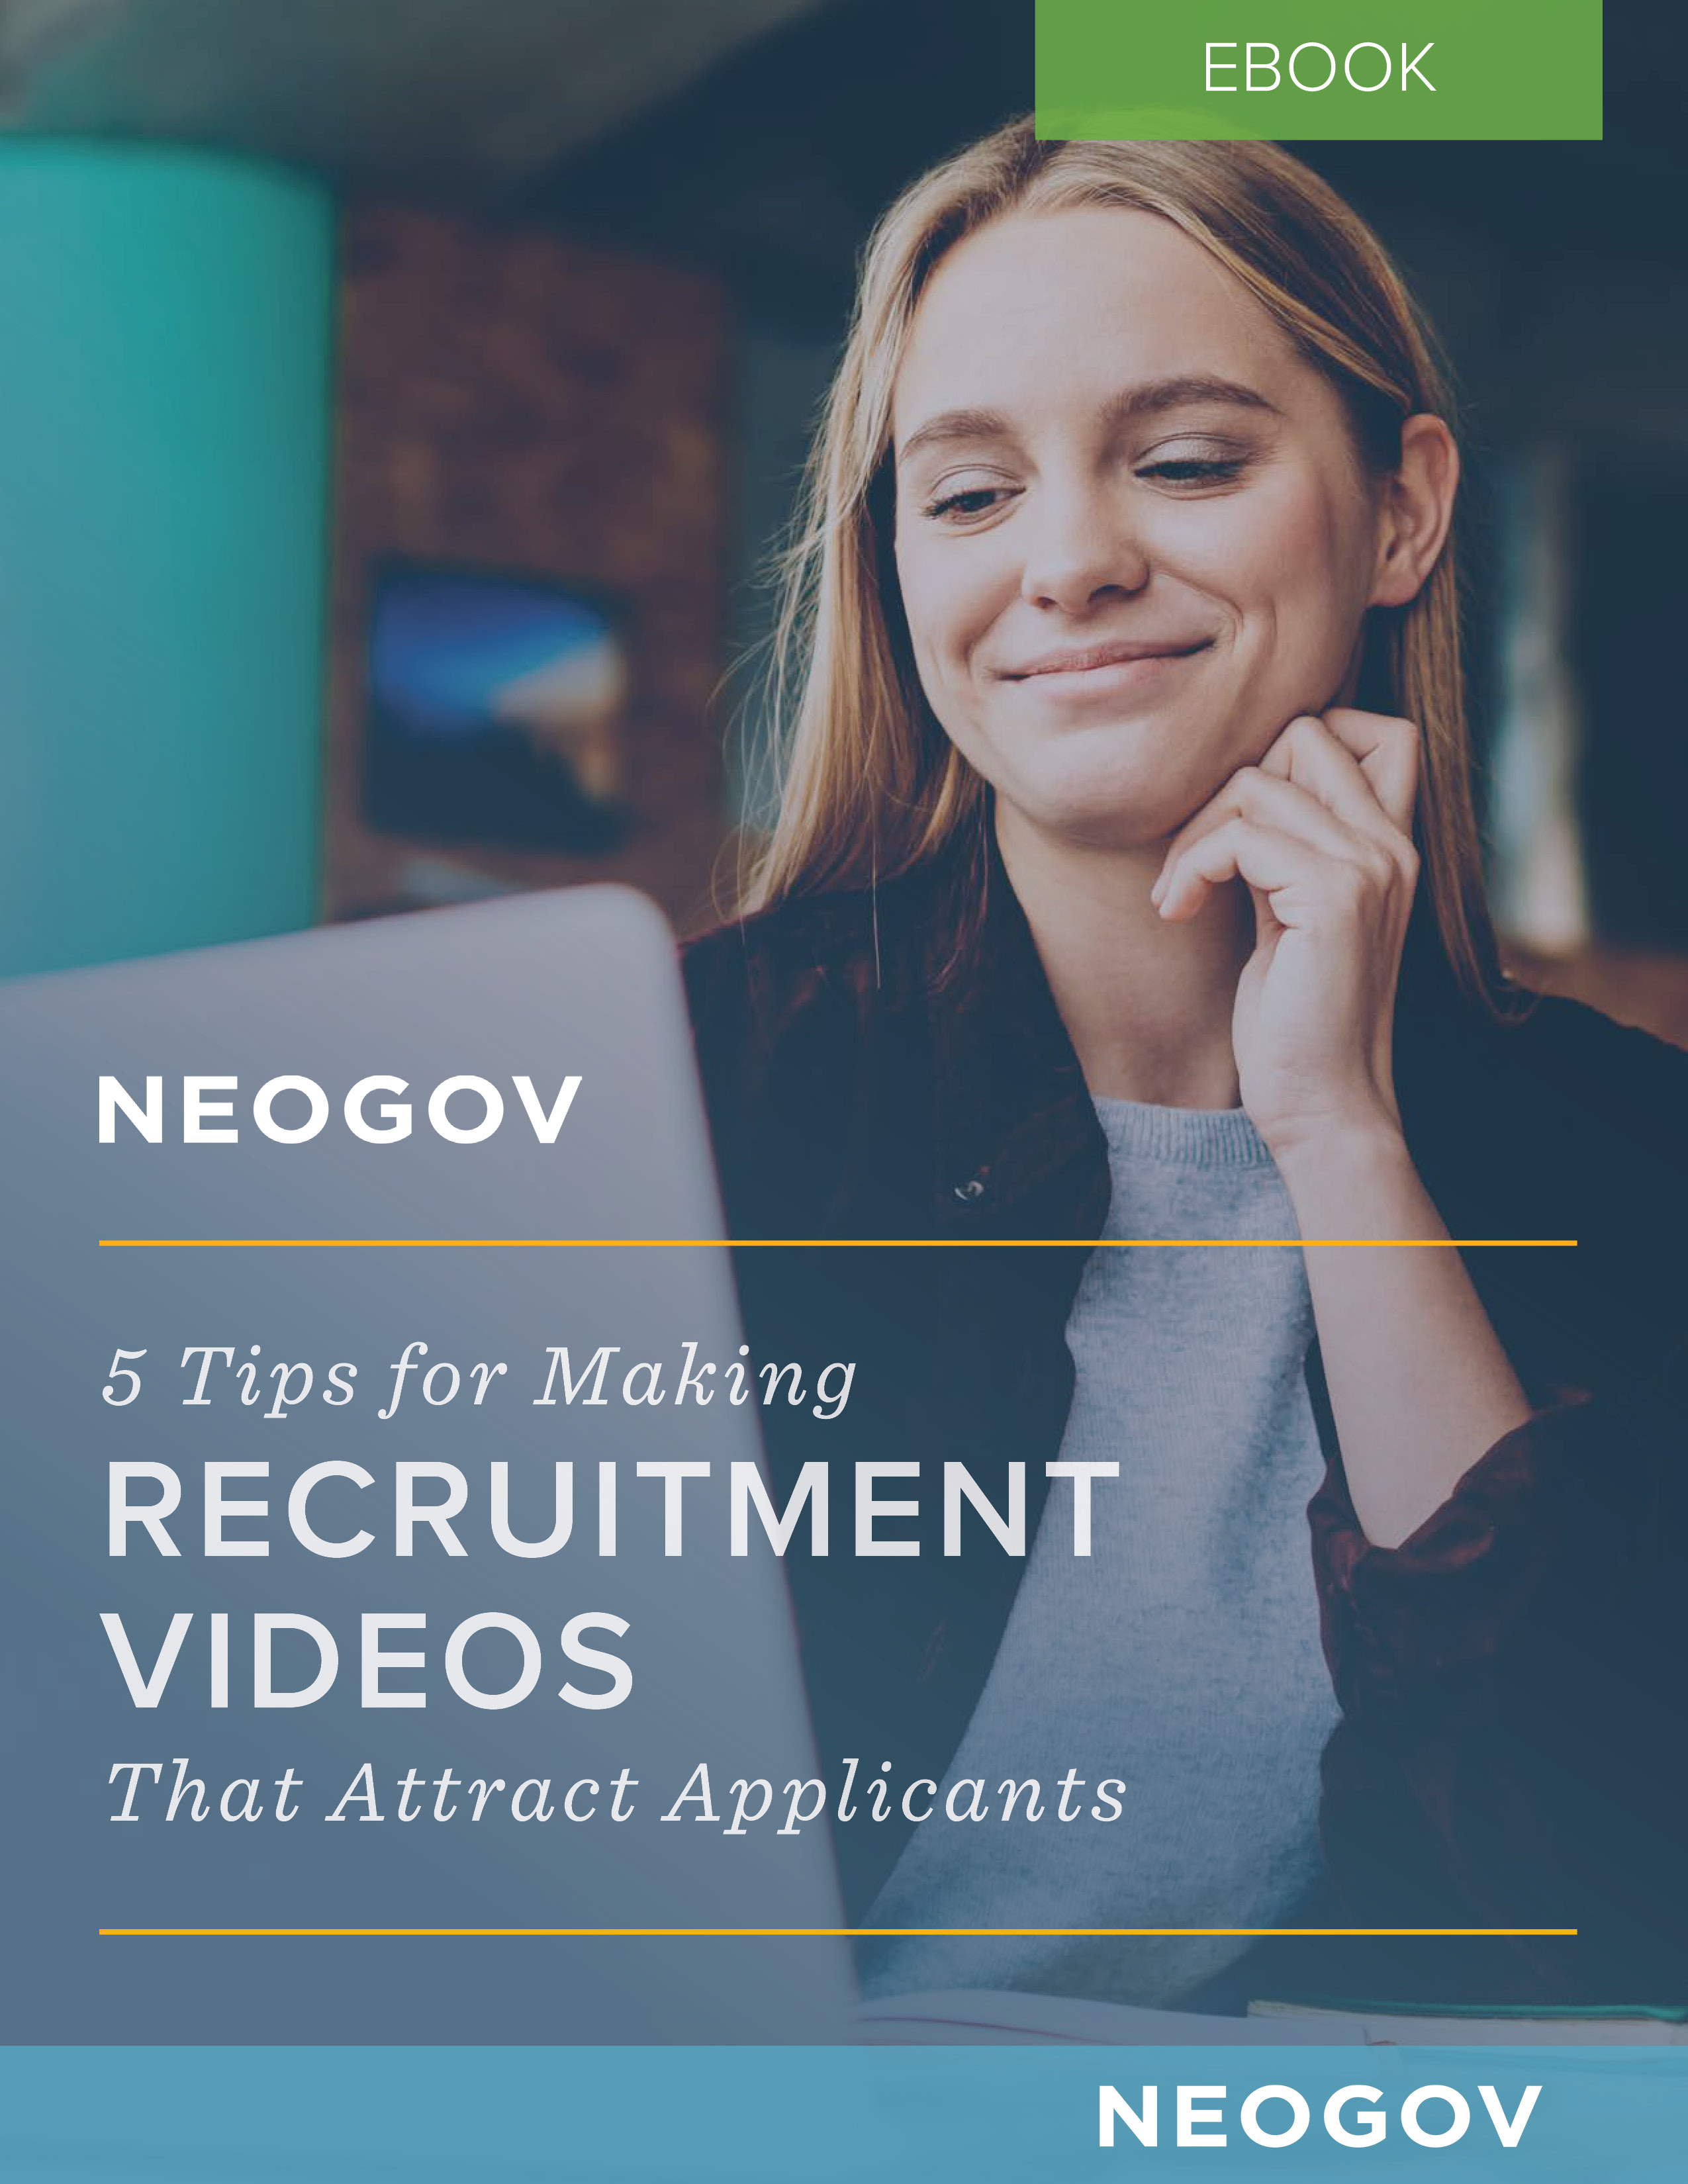 5 Tips for Making Recruitment Videos